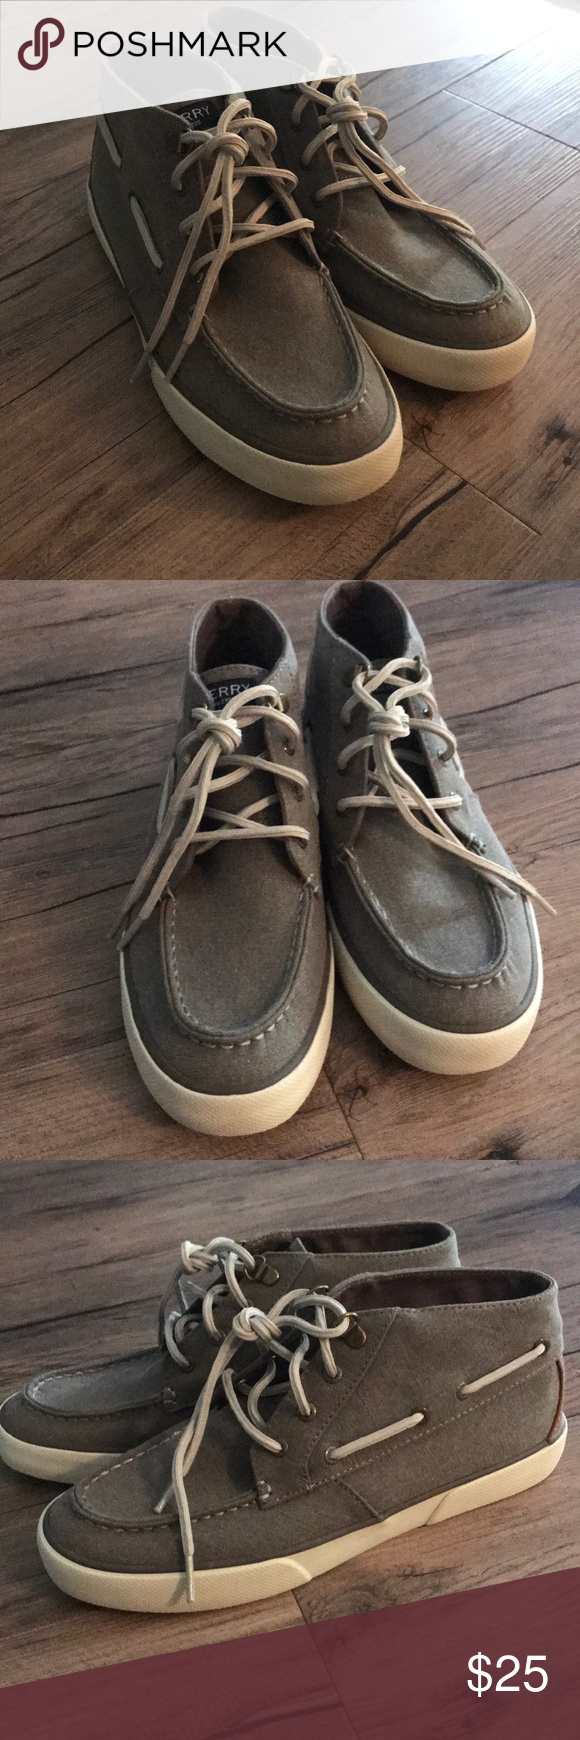 NWOT Sperry Hightops | Sperrys, Sperry shoes, High tops